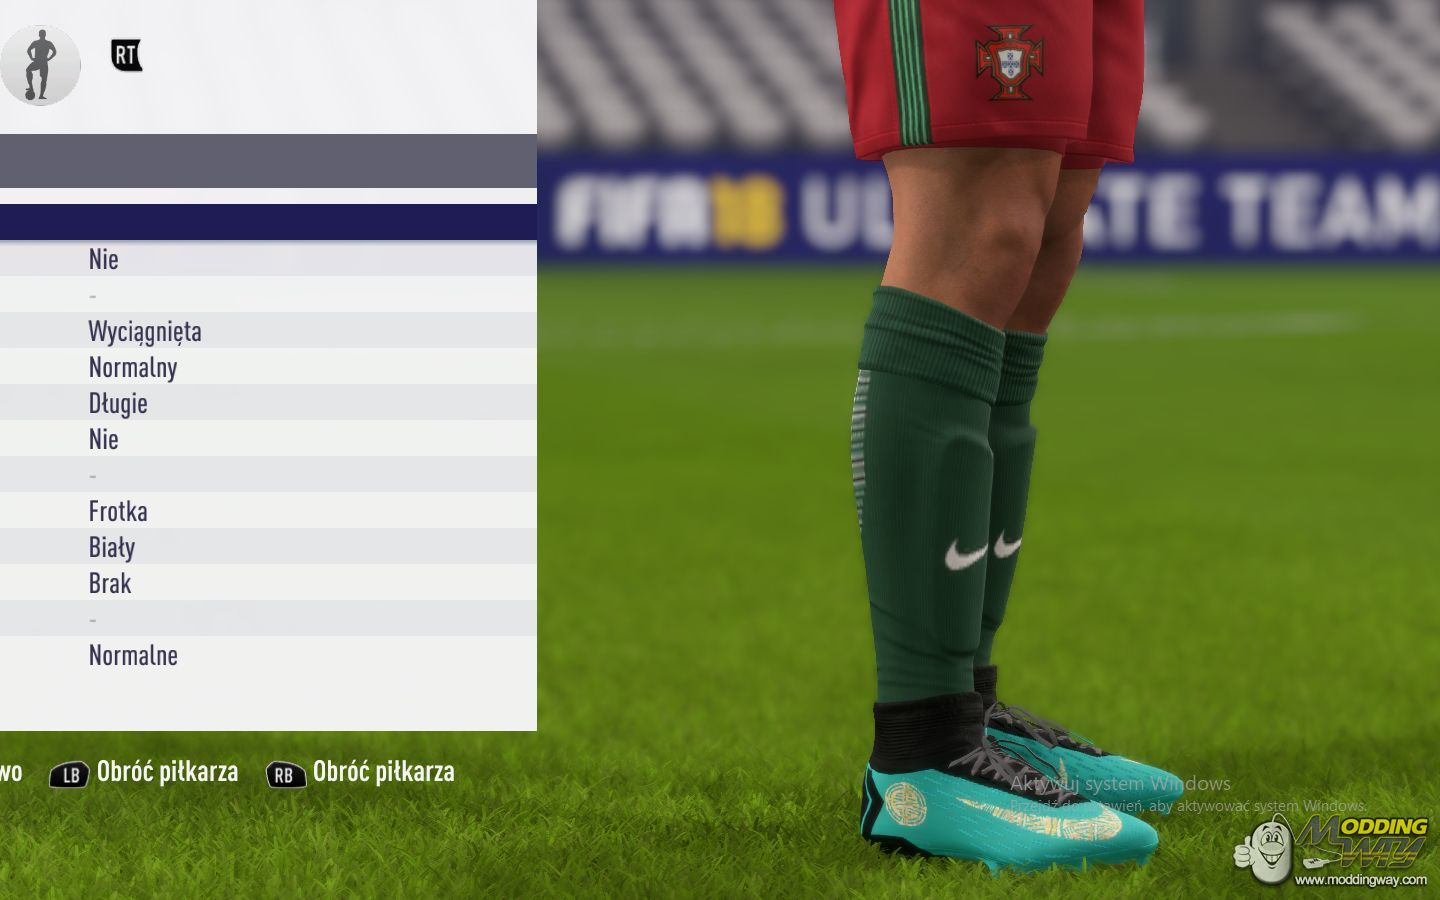 separation shoes ea4bc cbd0d Nike Mercurial Superfly 6 Elite CR7 - FIFA 18 at ModdingWay